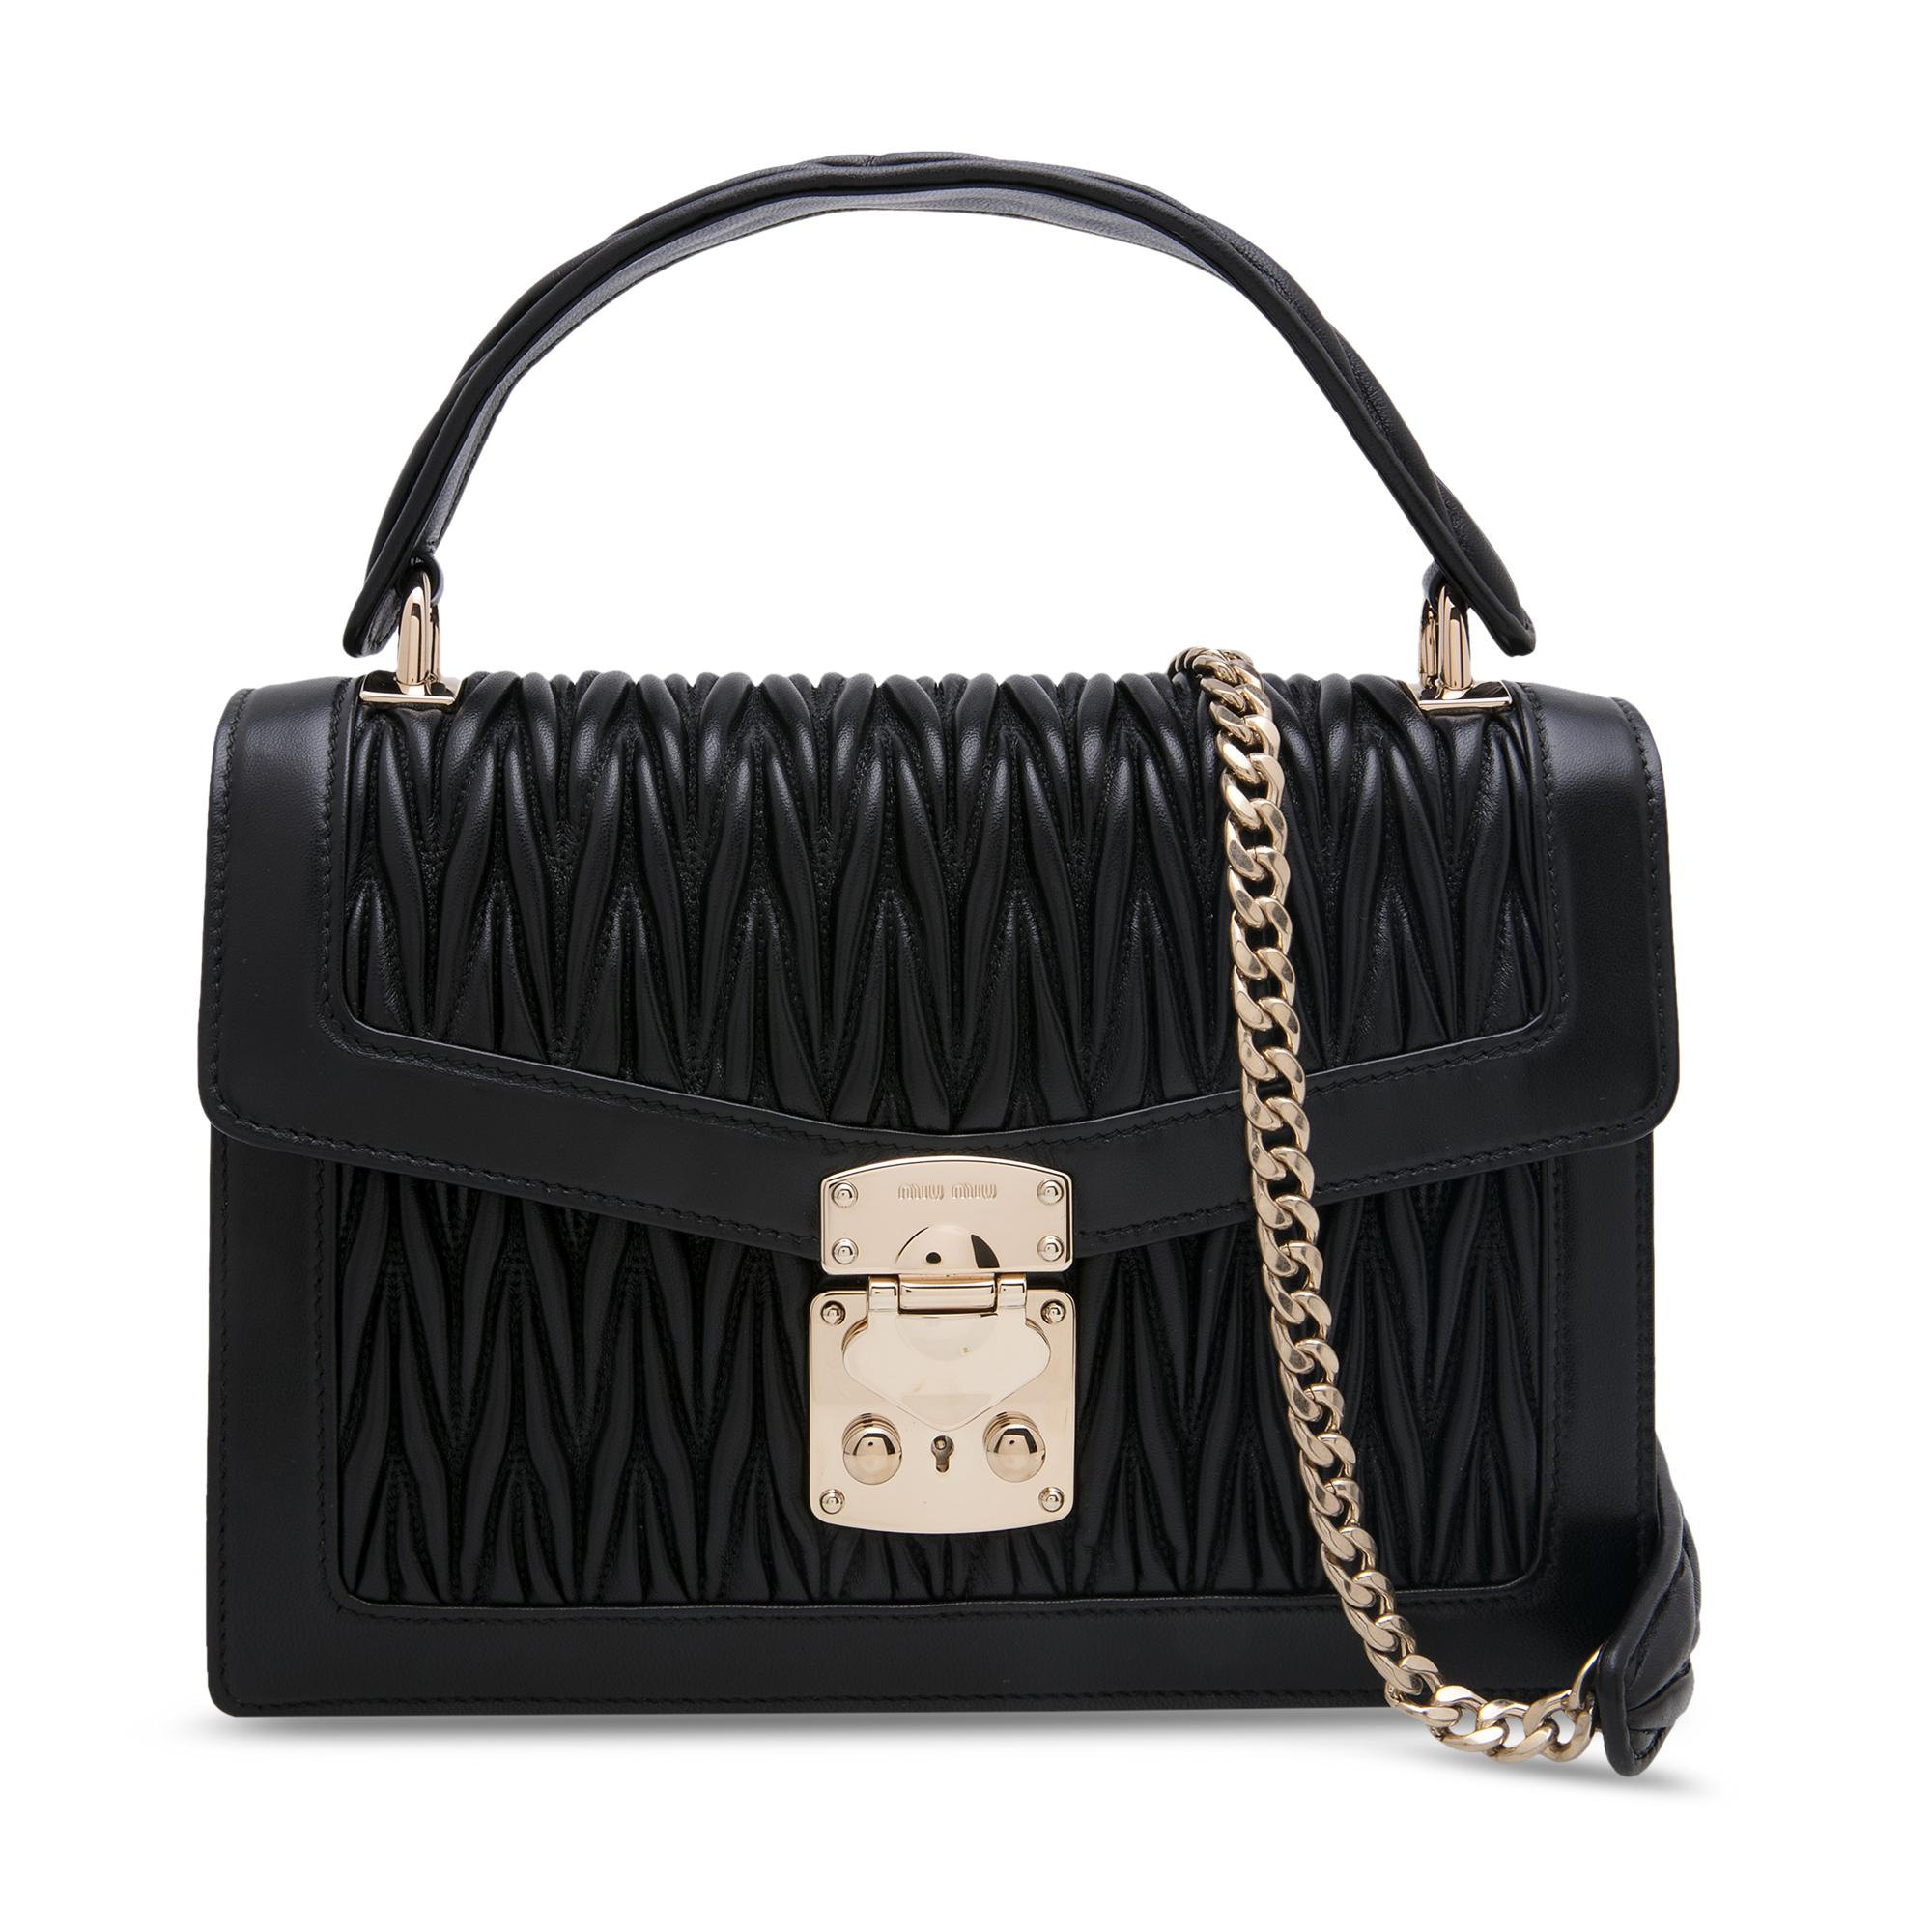 Miu Confidential velvet and ayers bag